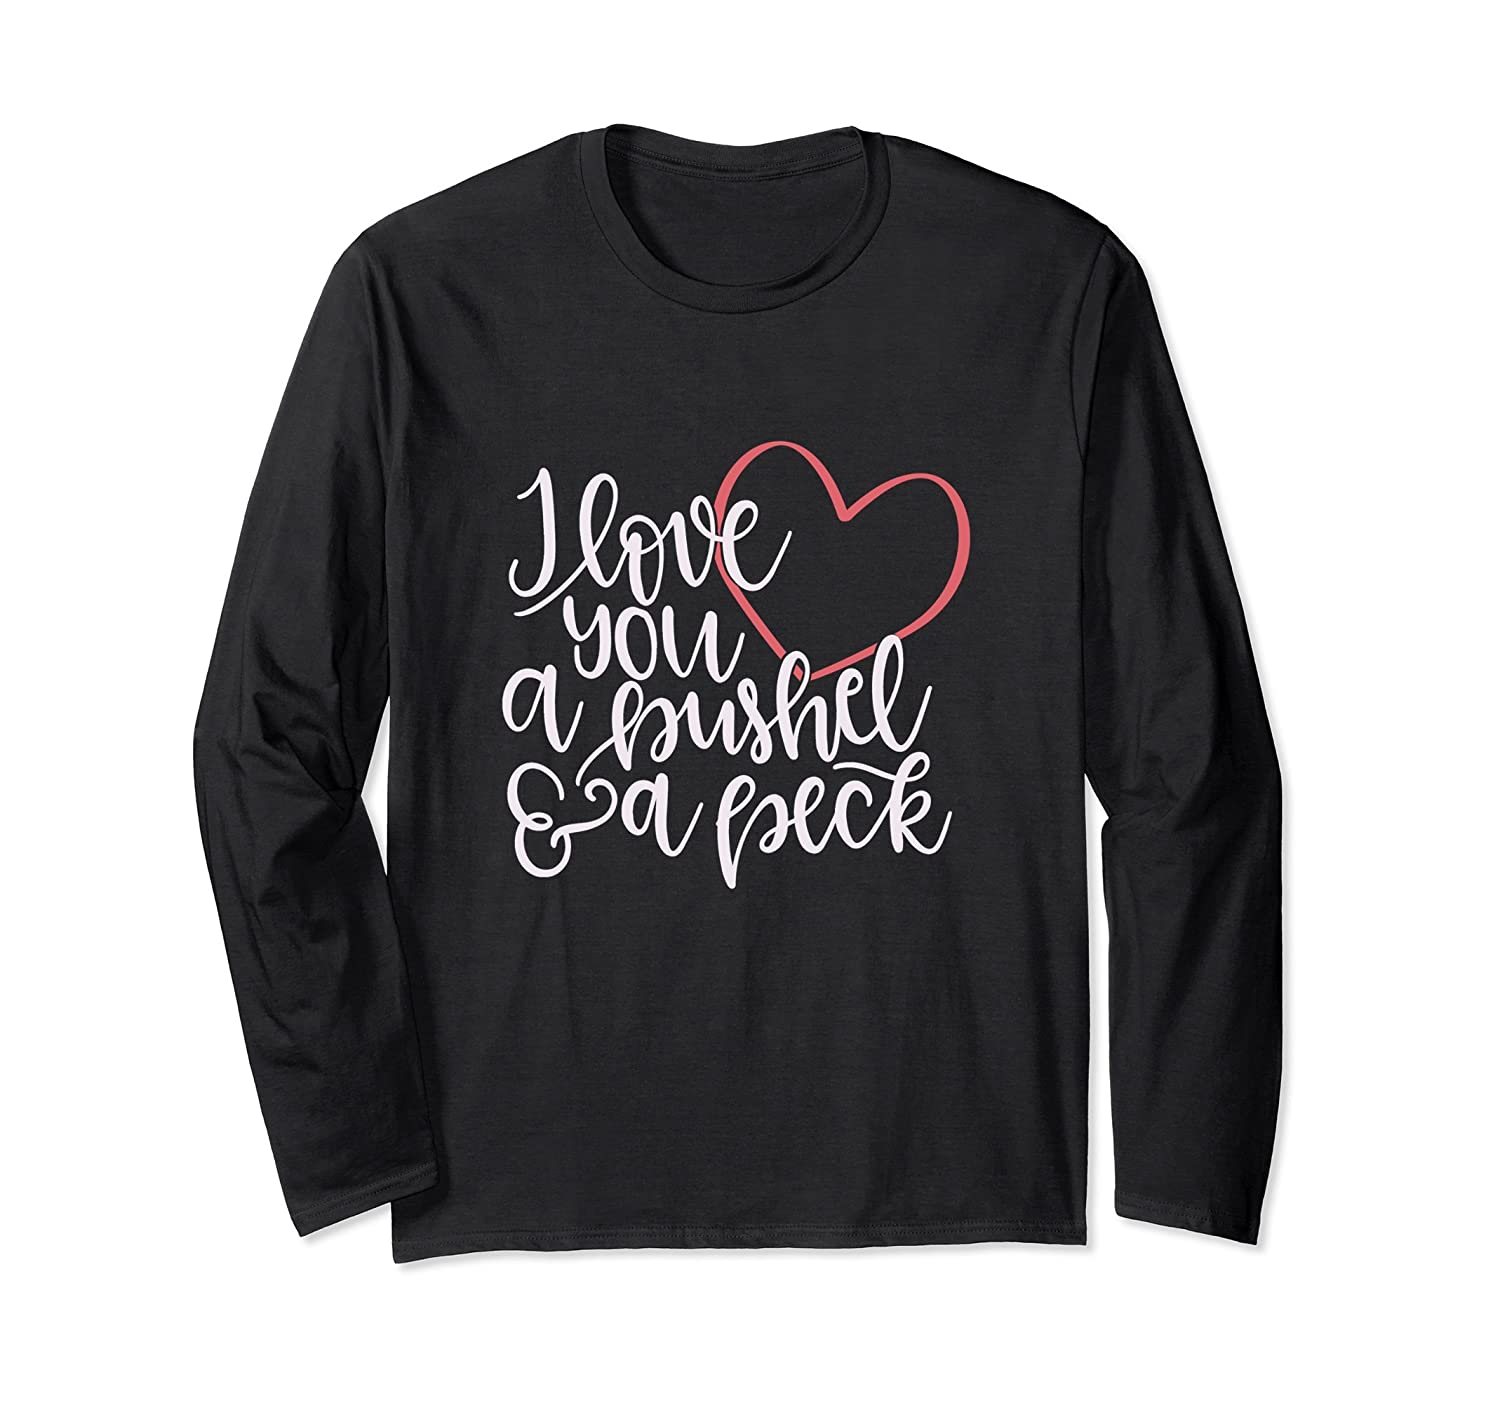 I Love You A Bushel & A Peck Long Sleeve T-Shirt-alottee gift